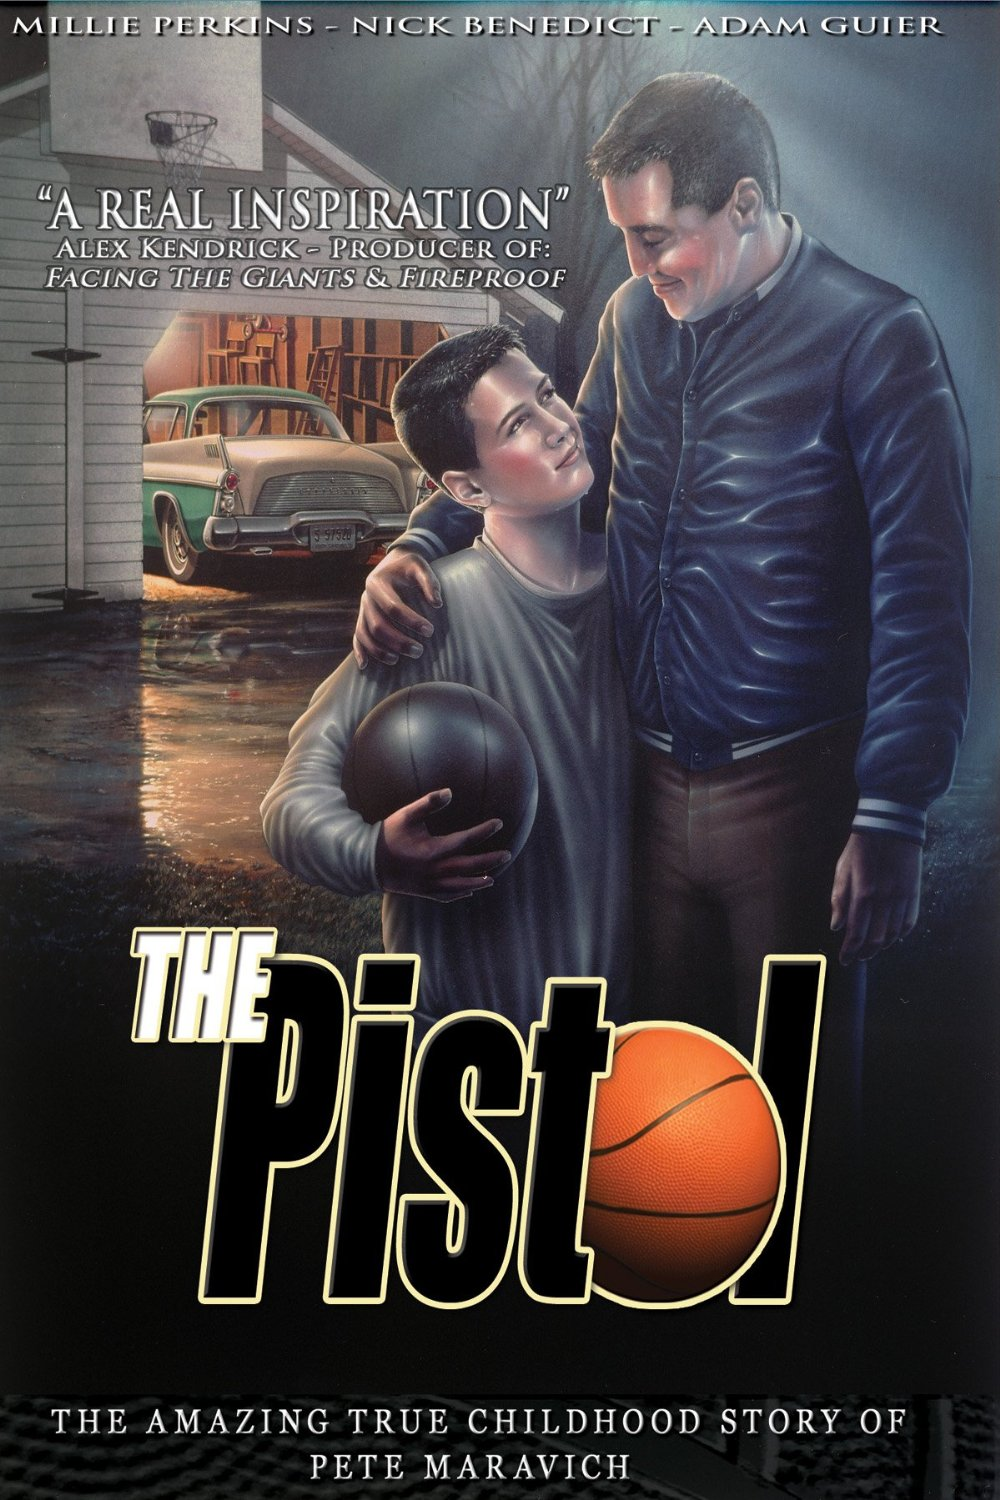 Watch Movie The Pistol The Birth of a Legend